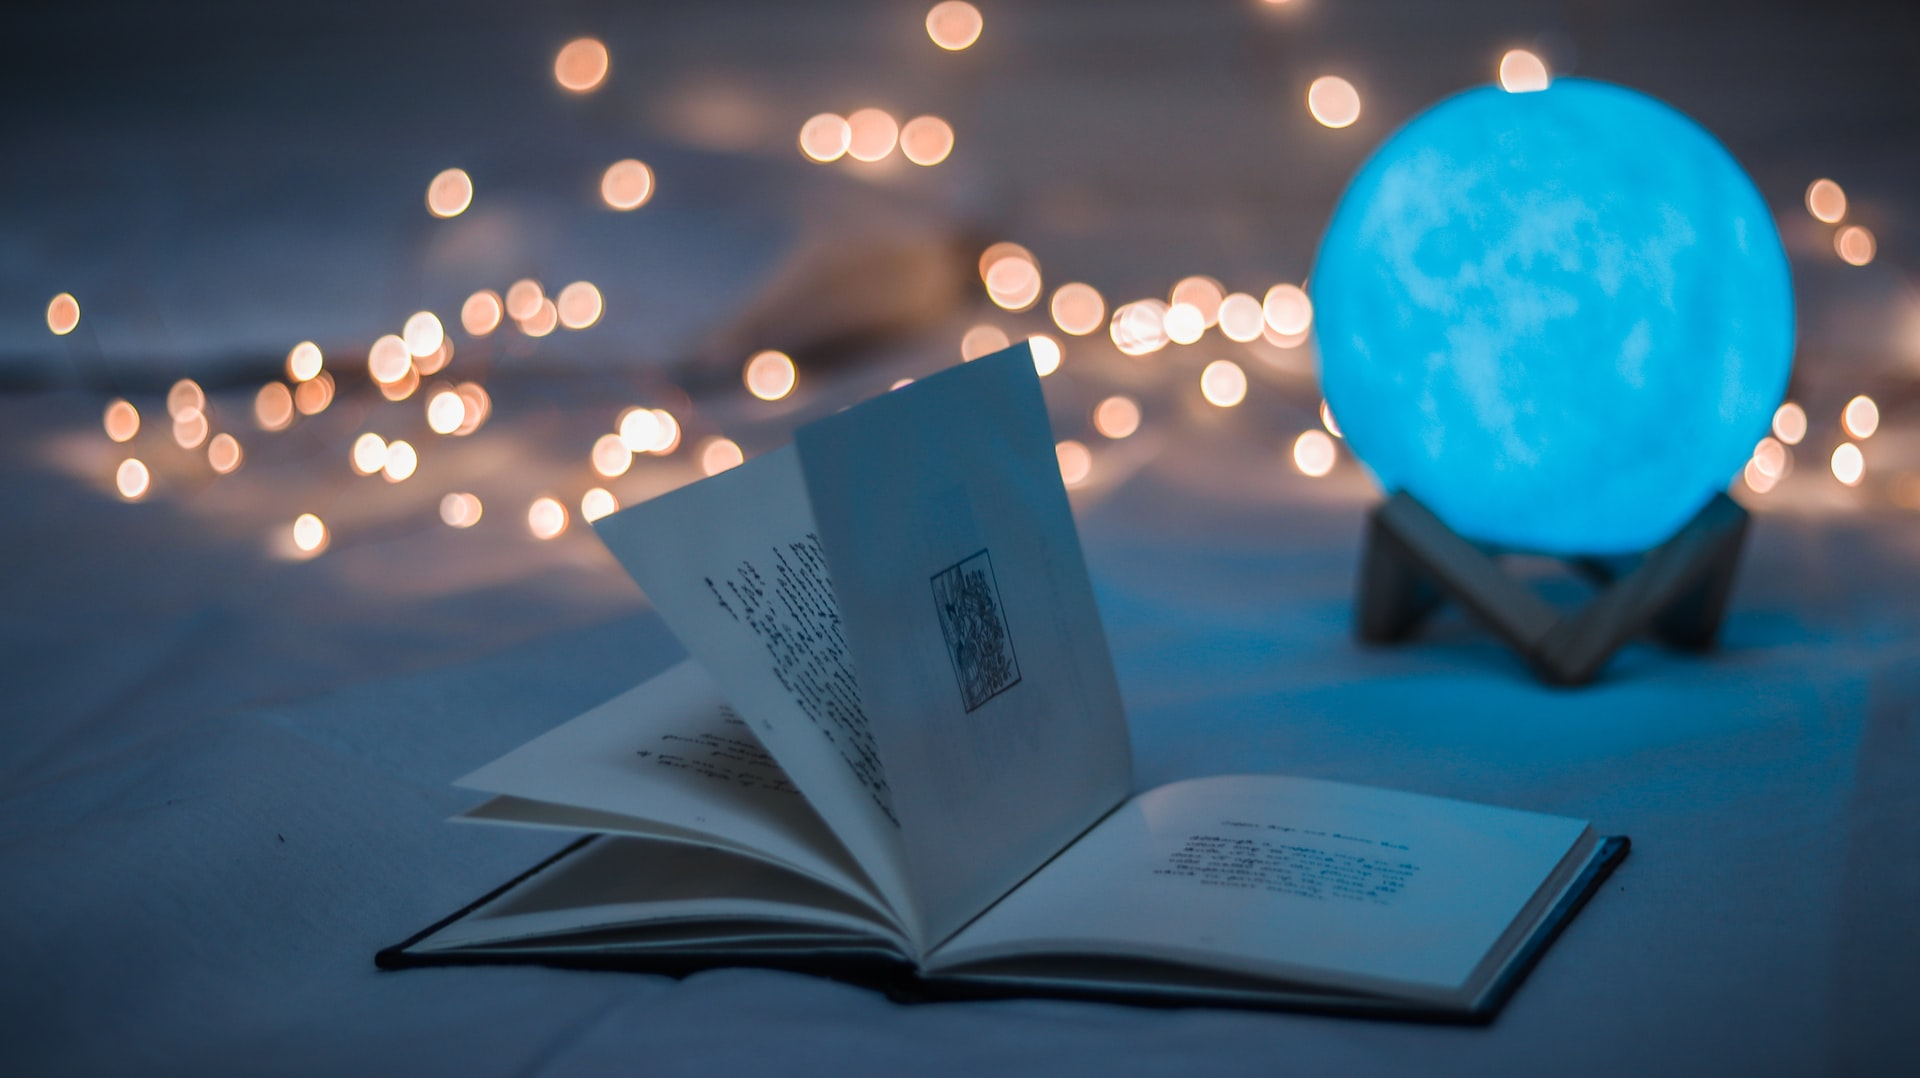 Opened book beside crystal ball